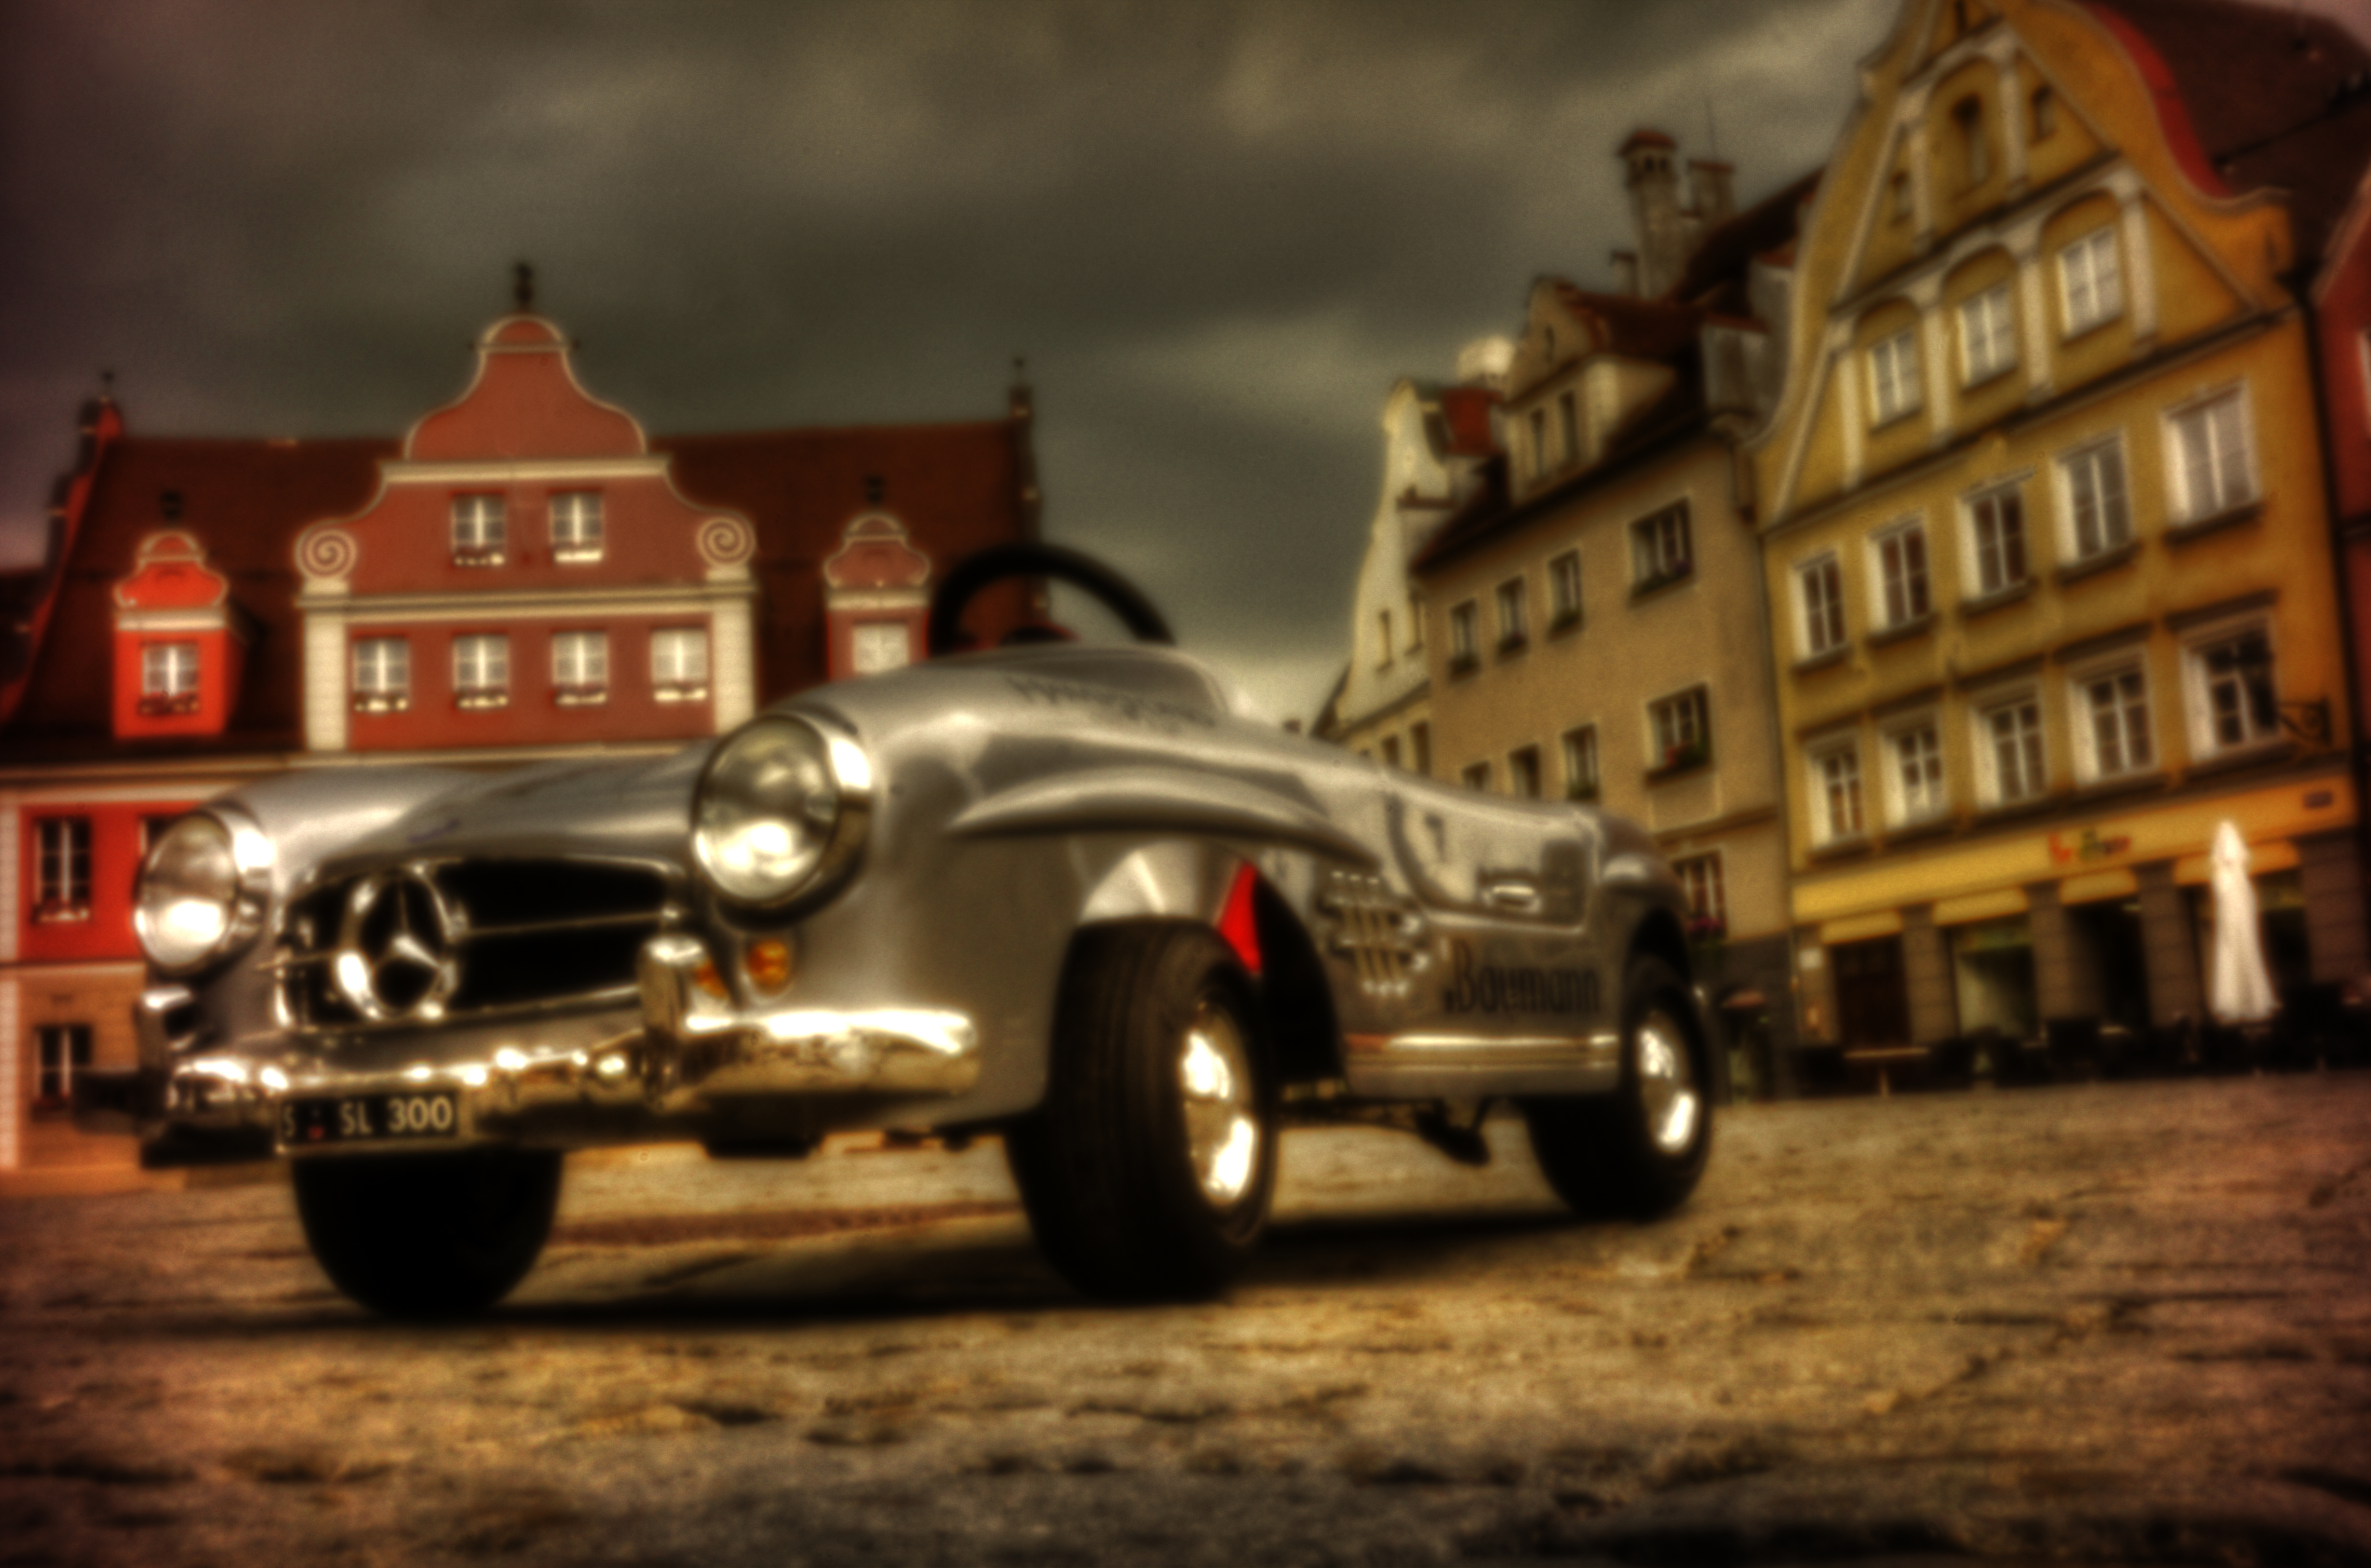 Aus der Froschperspecitive … – Toy cars from a frog's perspective